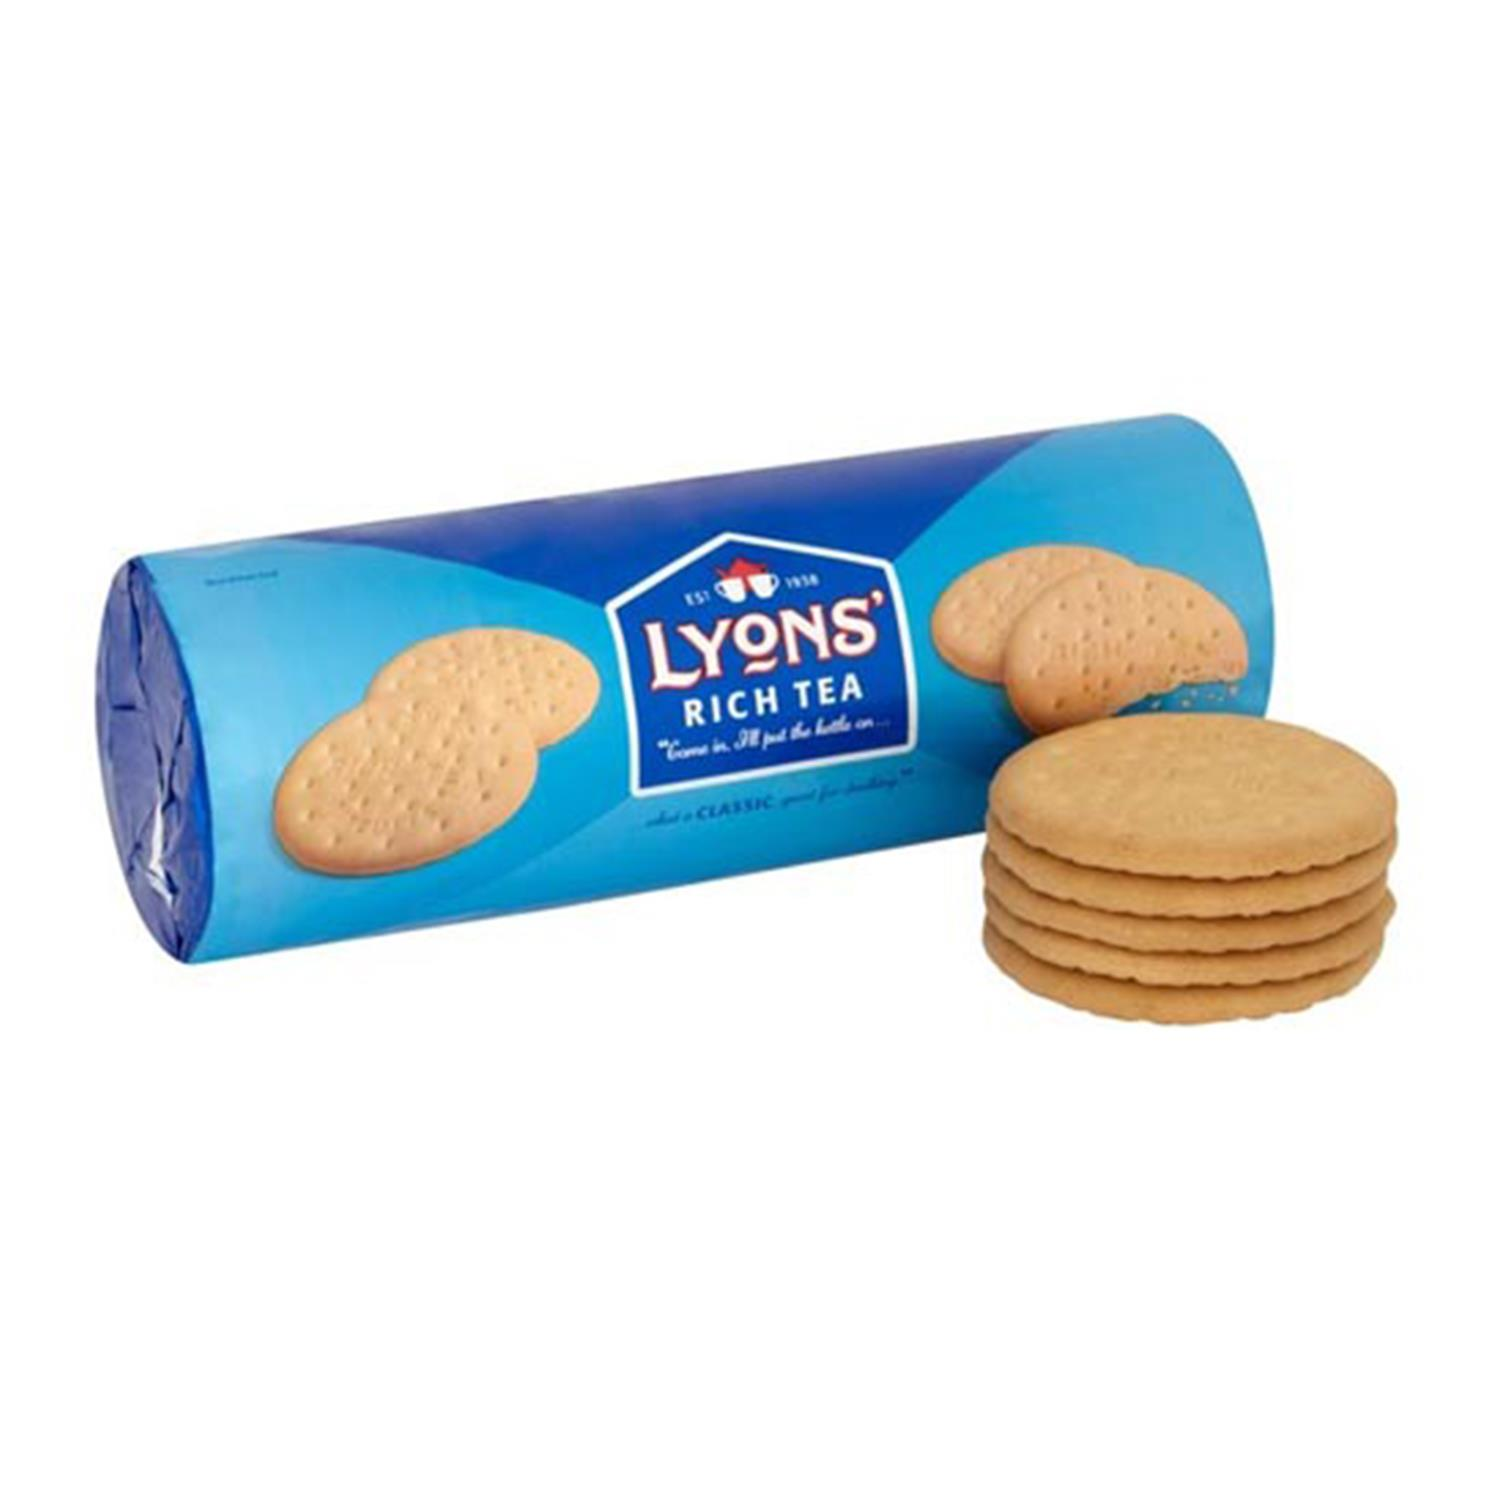 thumbnail 22 - Lyons Rich Tea Biscuits 300g, Great for a morning or afternoon snack